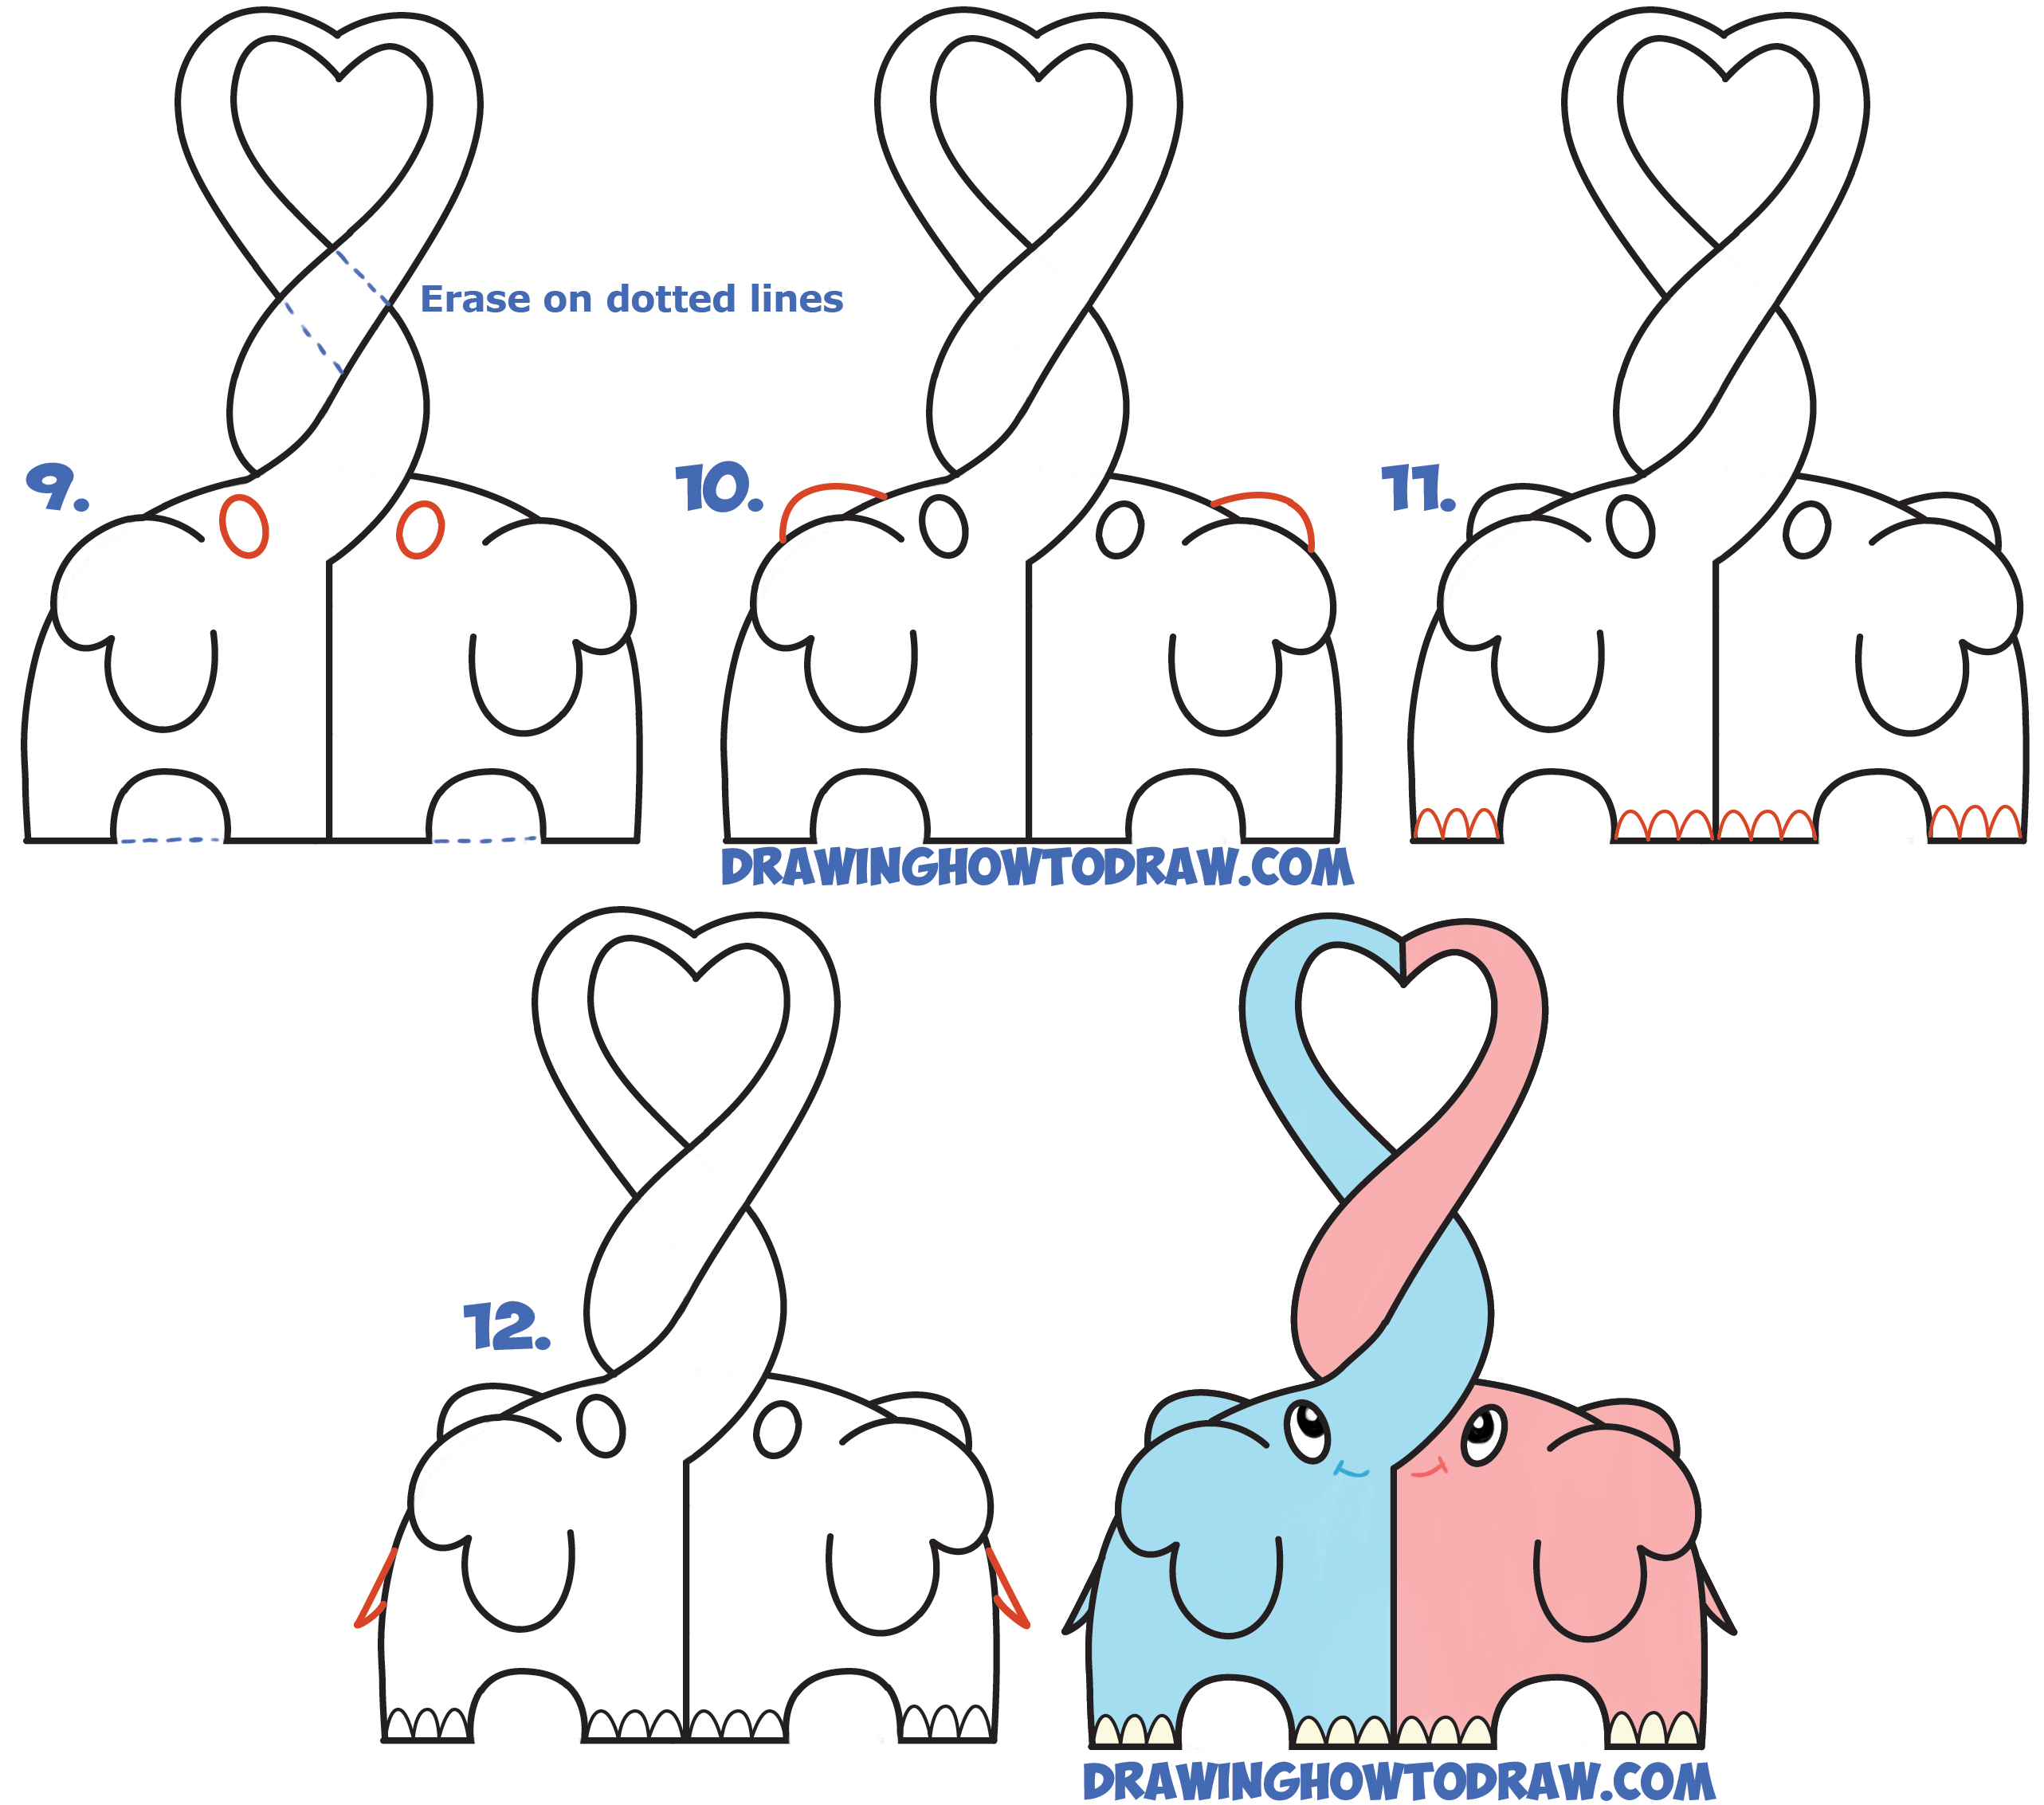 How to draw an elephant: the steps of building a picture and giving it a volume 59